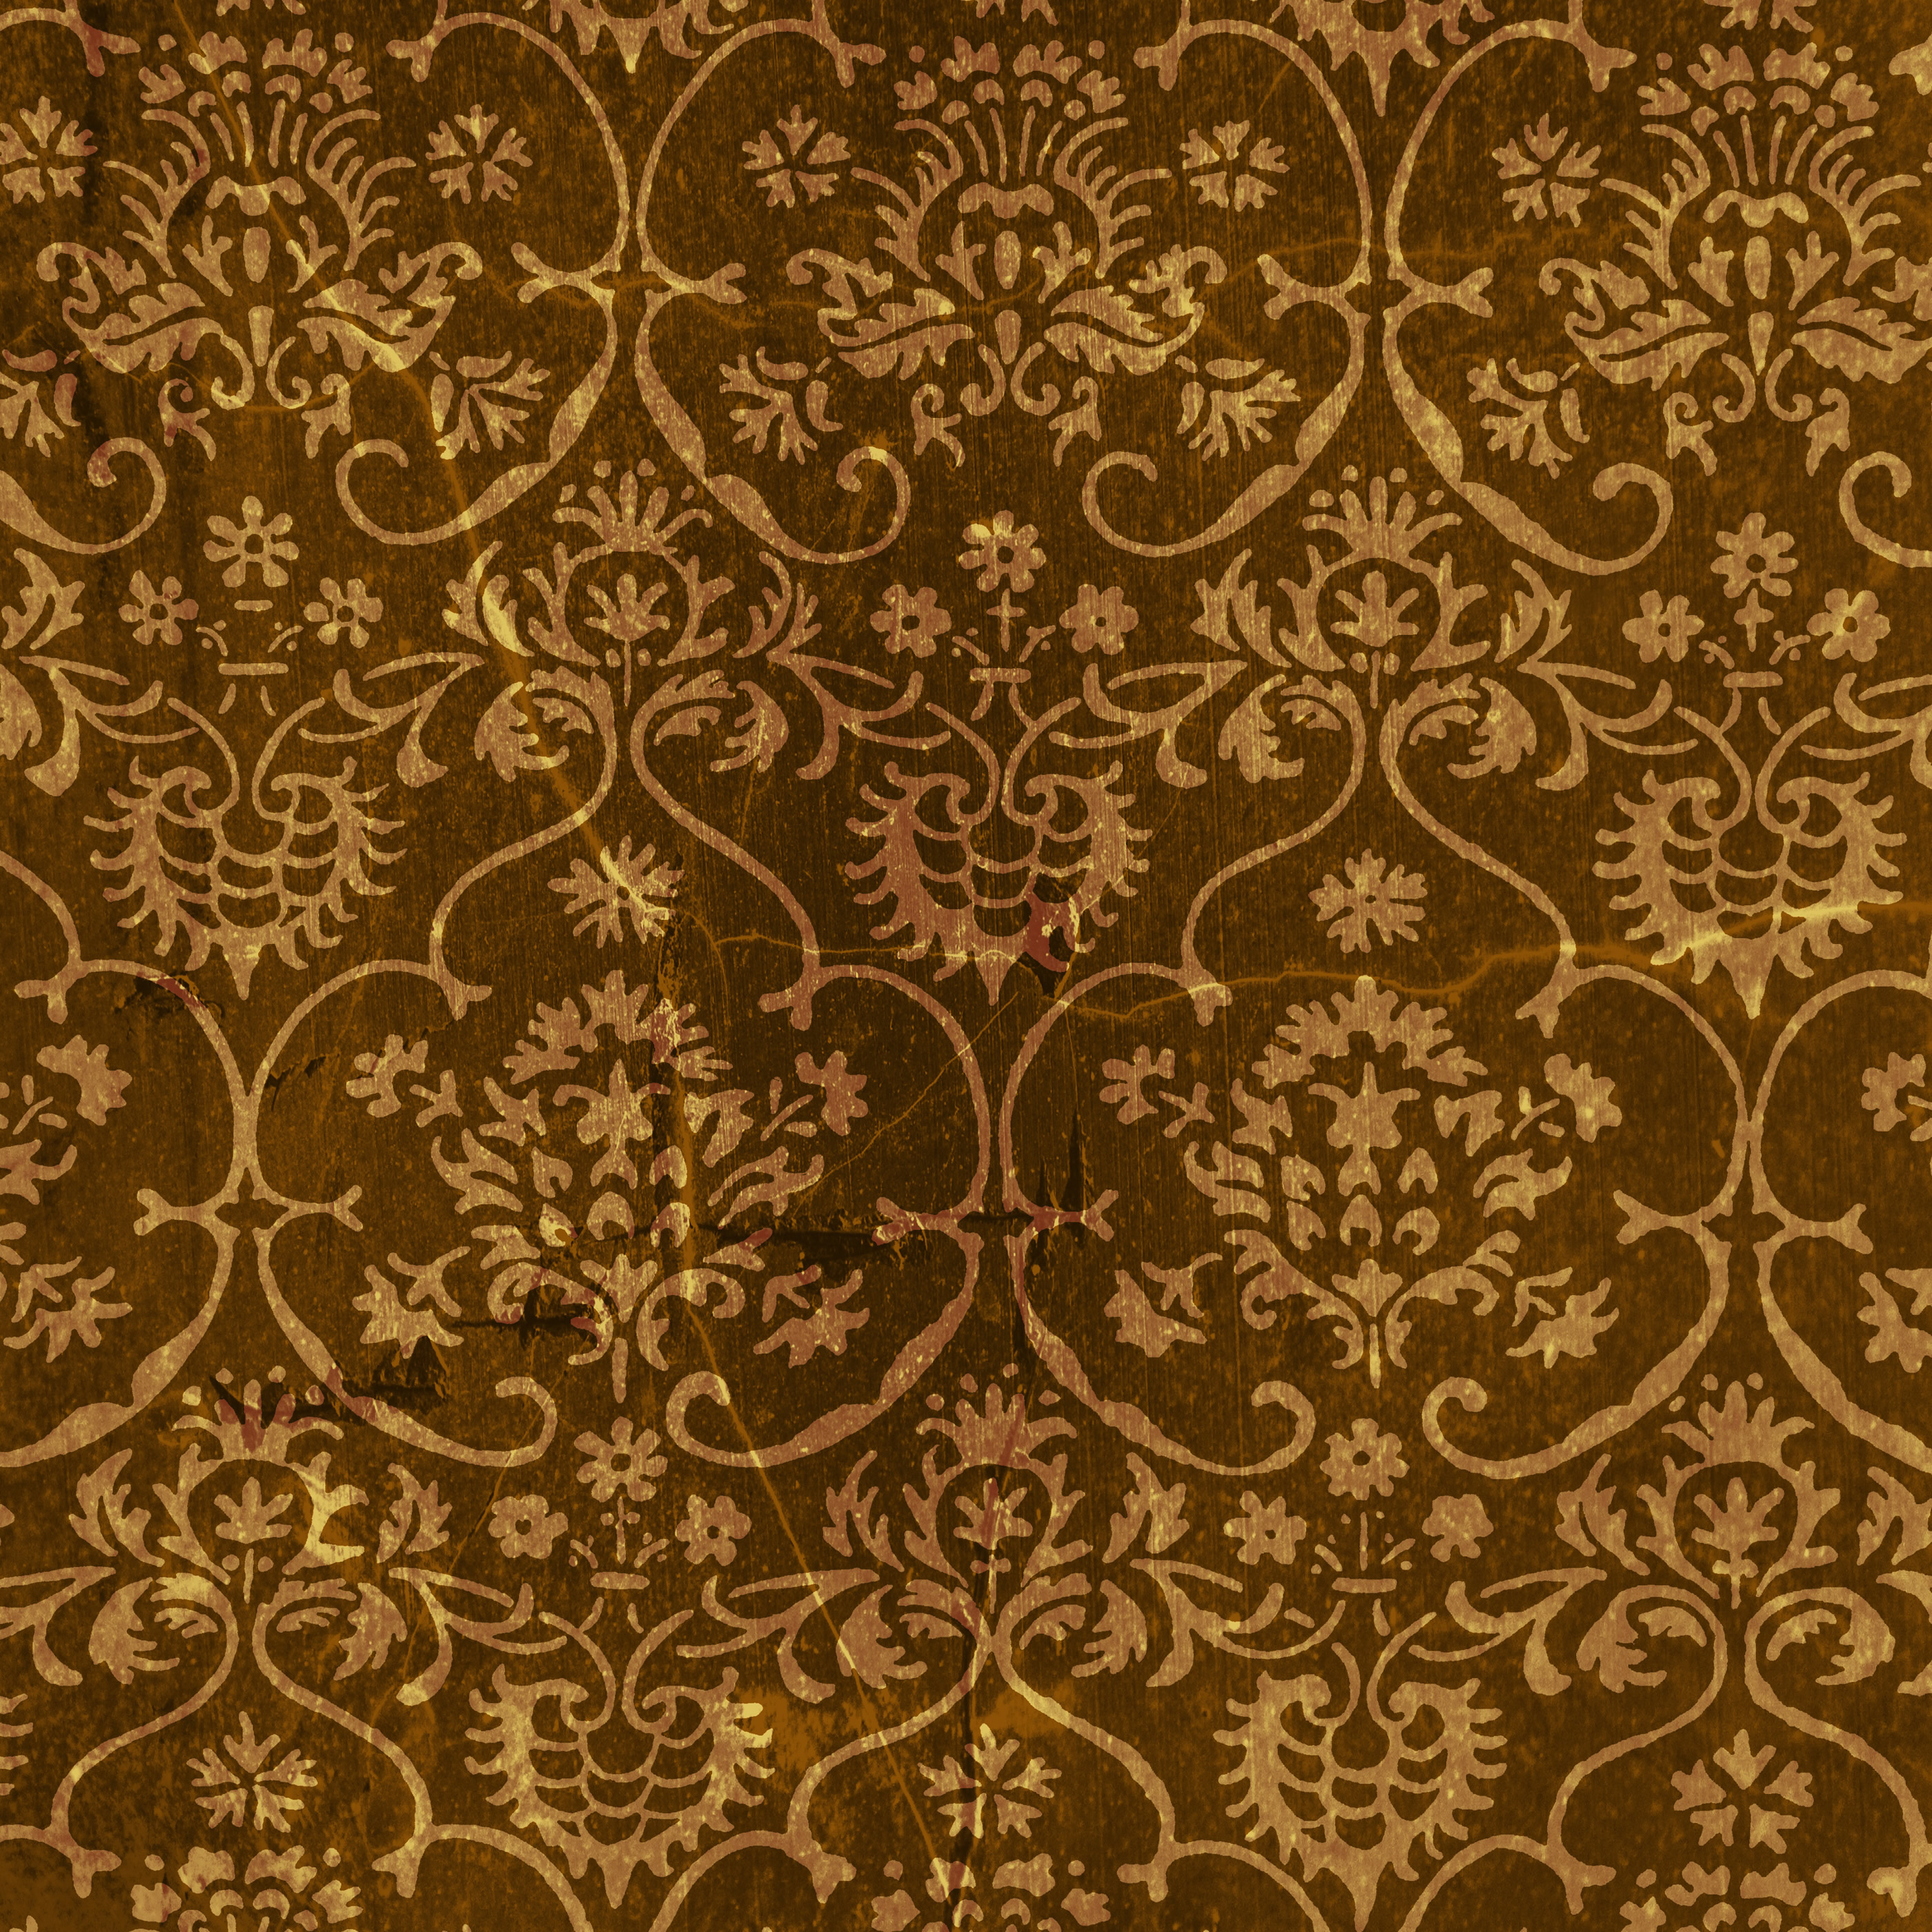 colorfull template, download background, texture, photo, brown pattern background